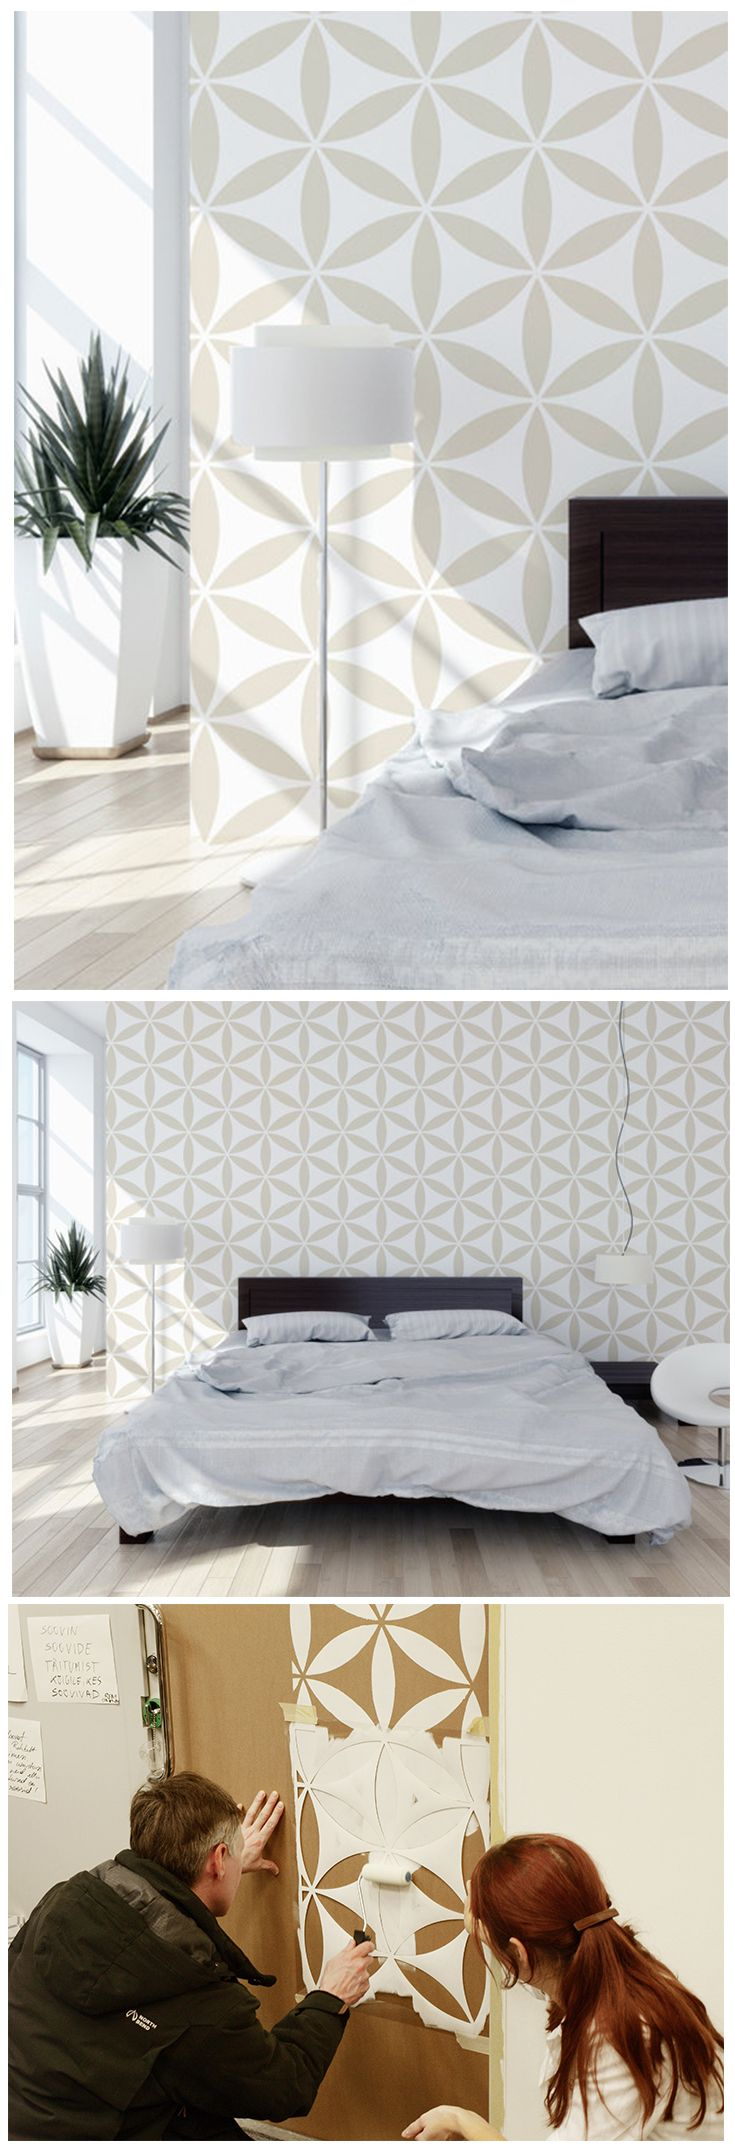 25 unique wall stenciling ideas on pinterest diy stenciled geometric stencil for wall furniture amipublicfo Images